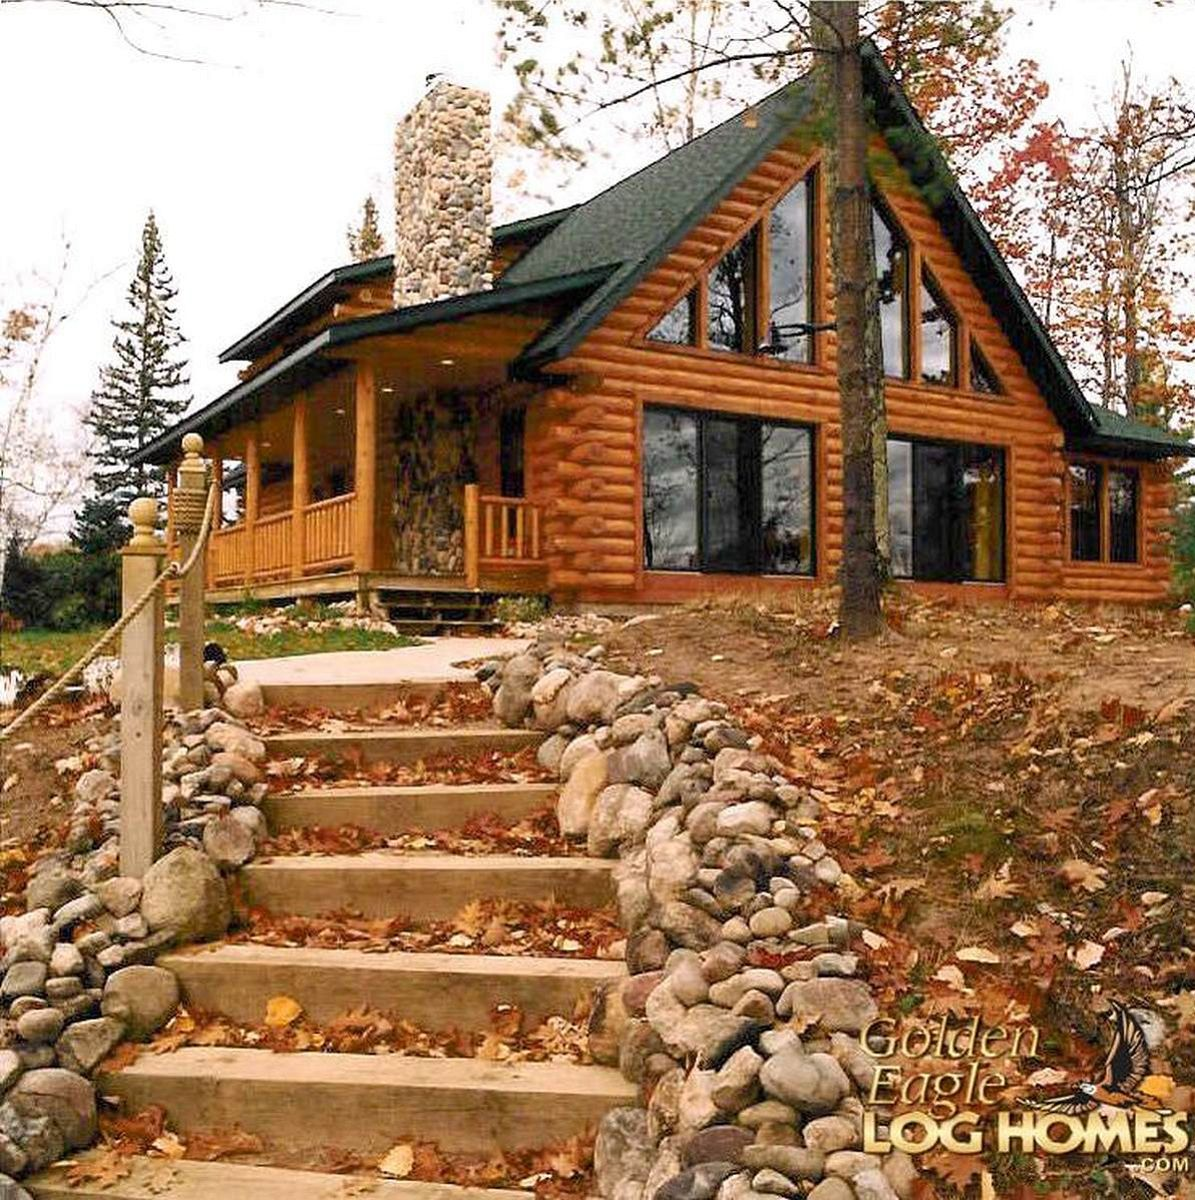 Log home by golden eagle log homes golden eagle log logs for Log home styles